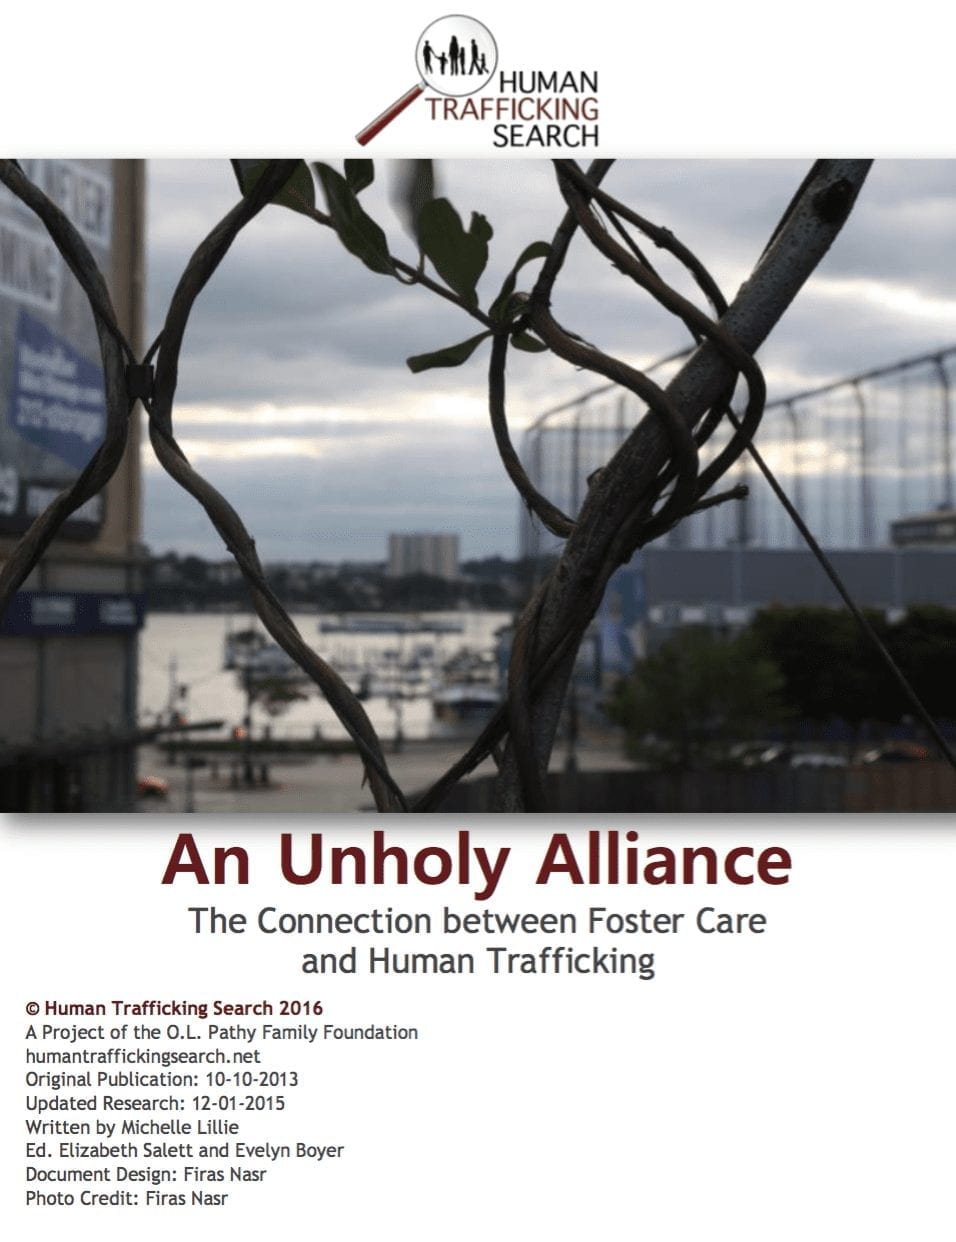 An Unholy Alliance: The Connection between Foster Care and Human Trafficking